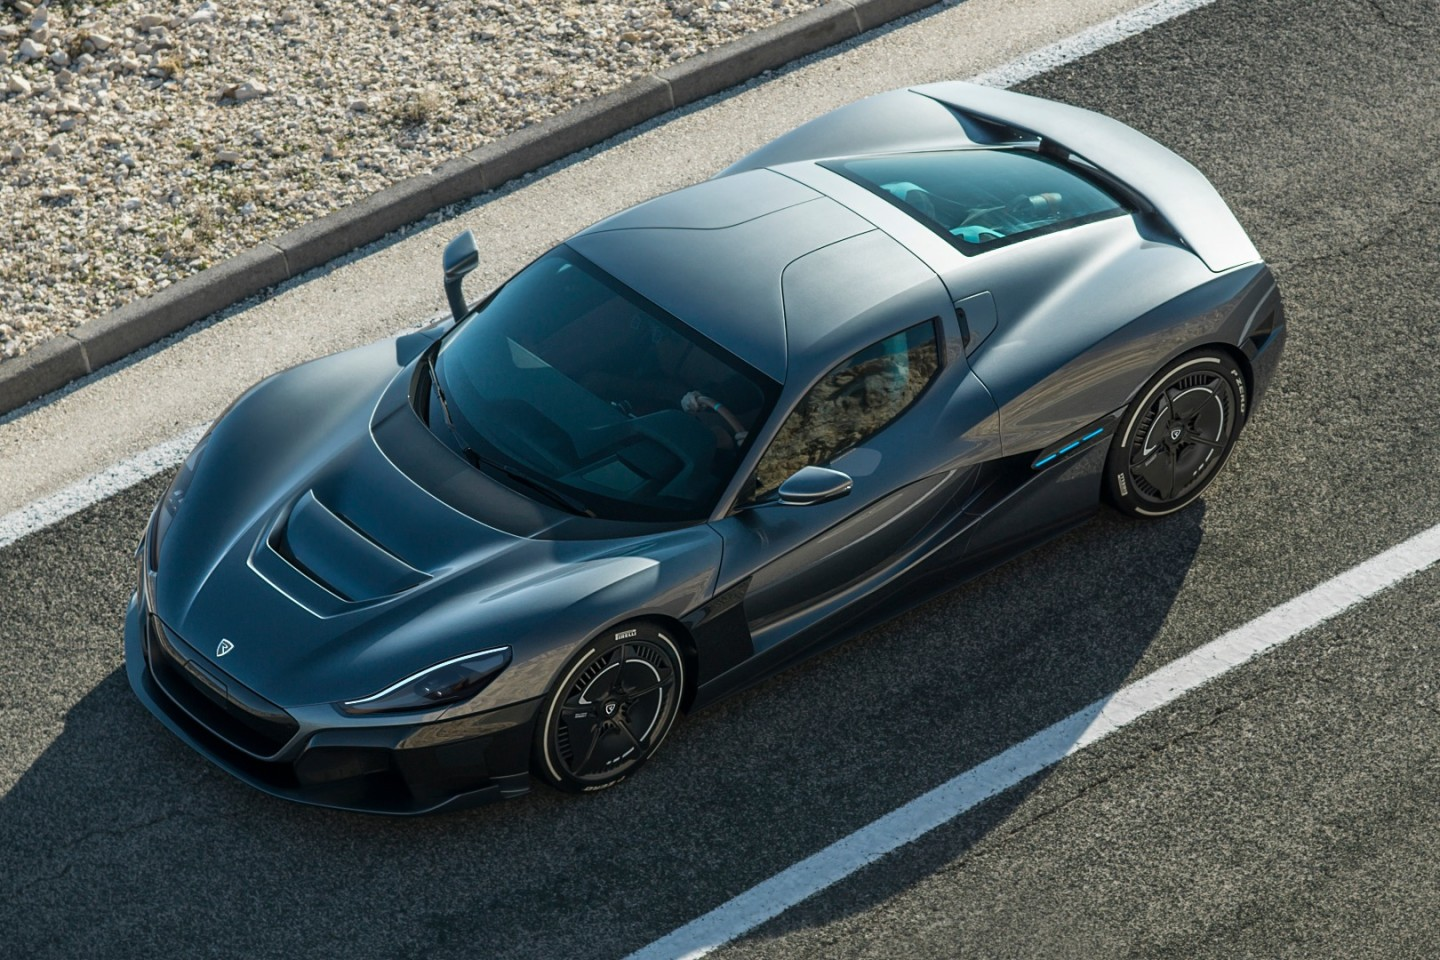 Rimac C_Two:level 4 self driving capability